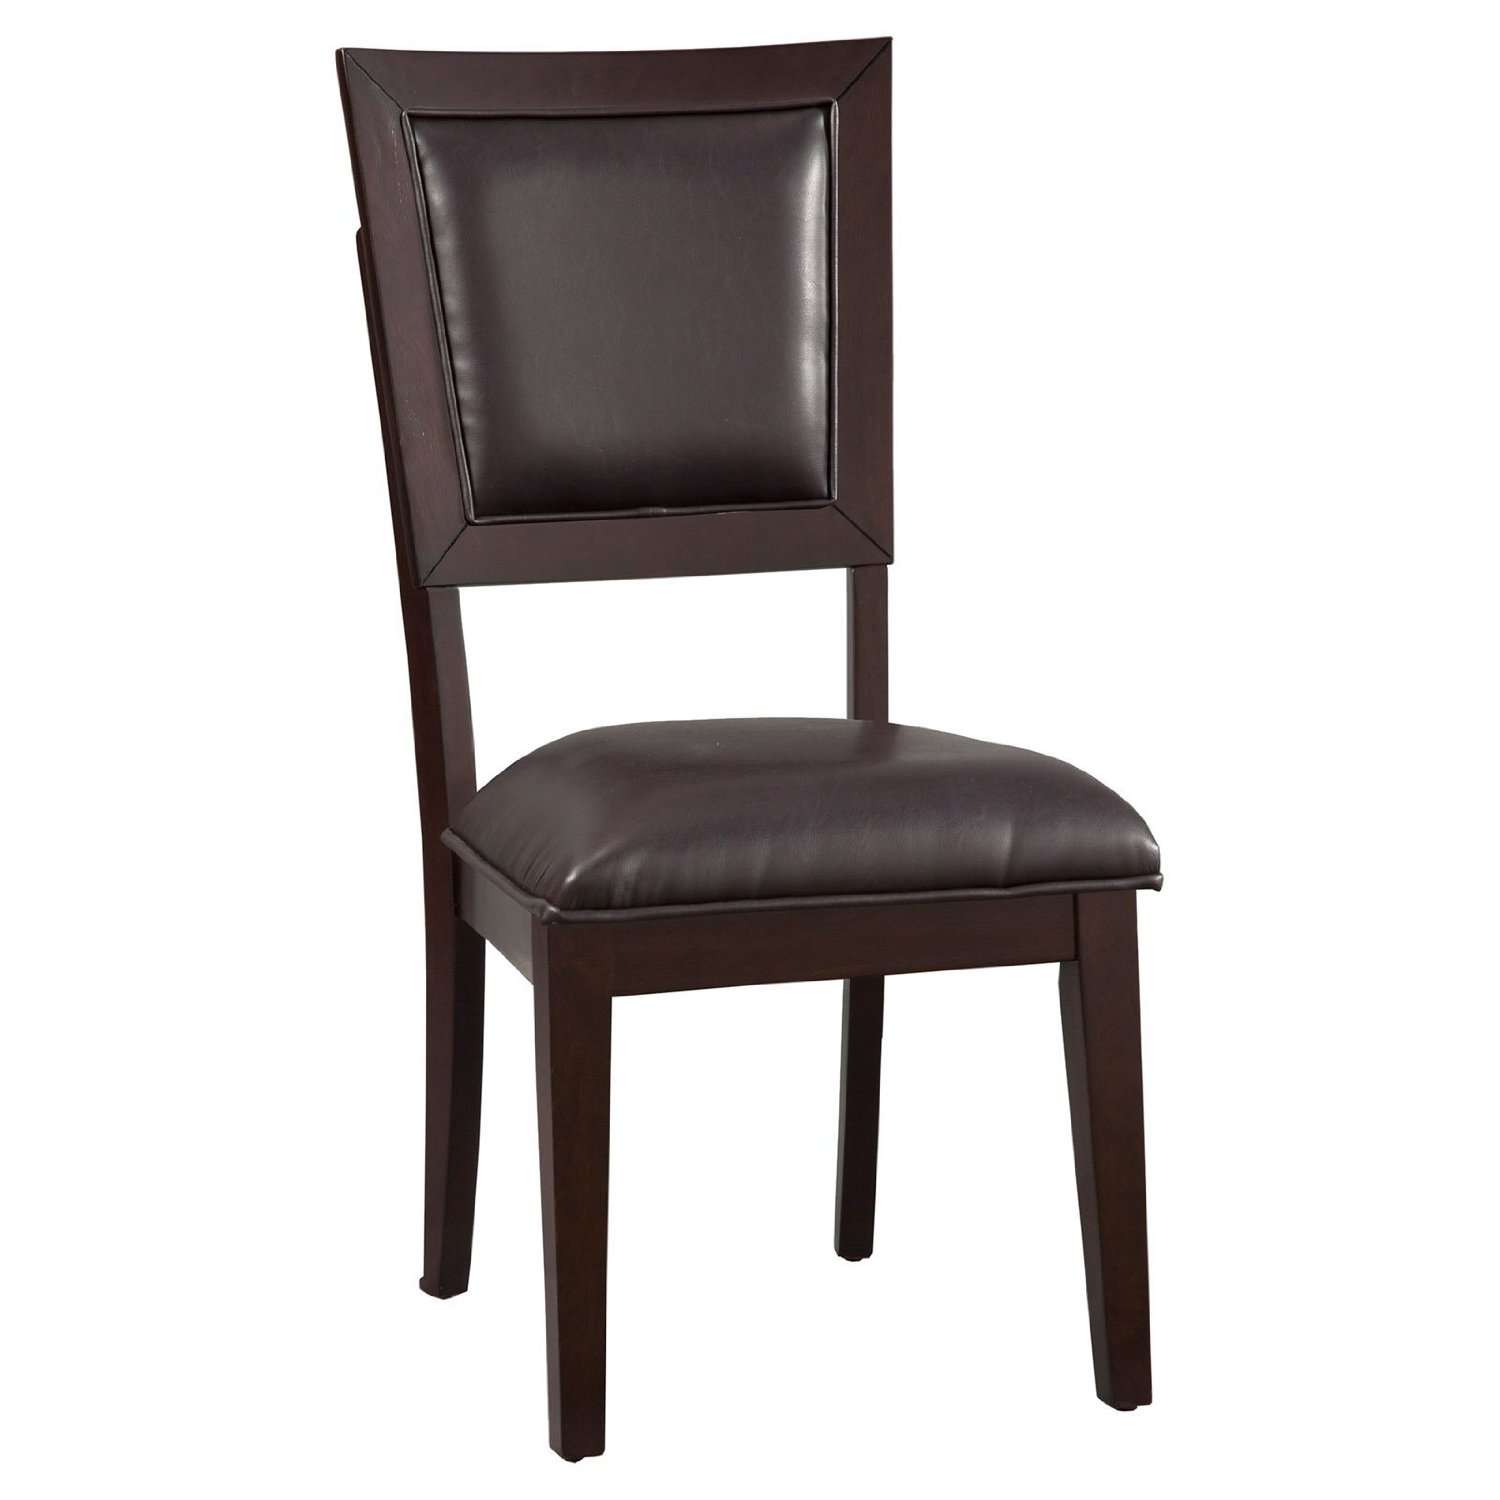 Midtown Side Chair - Espresso Frame, Black Upholstery